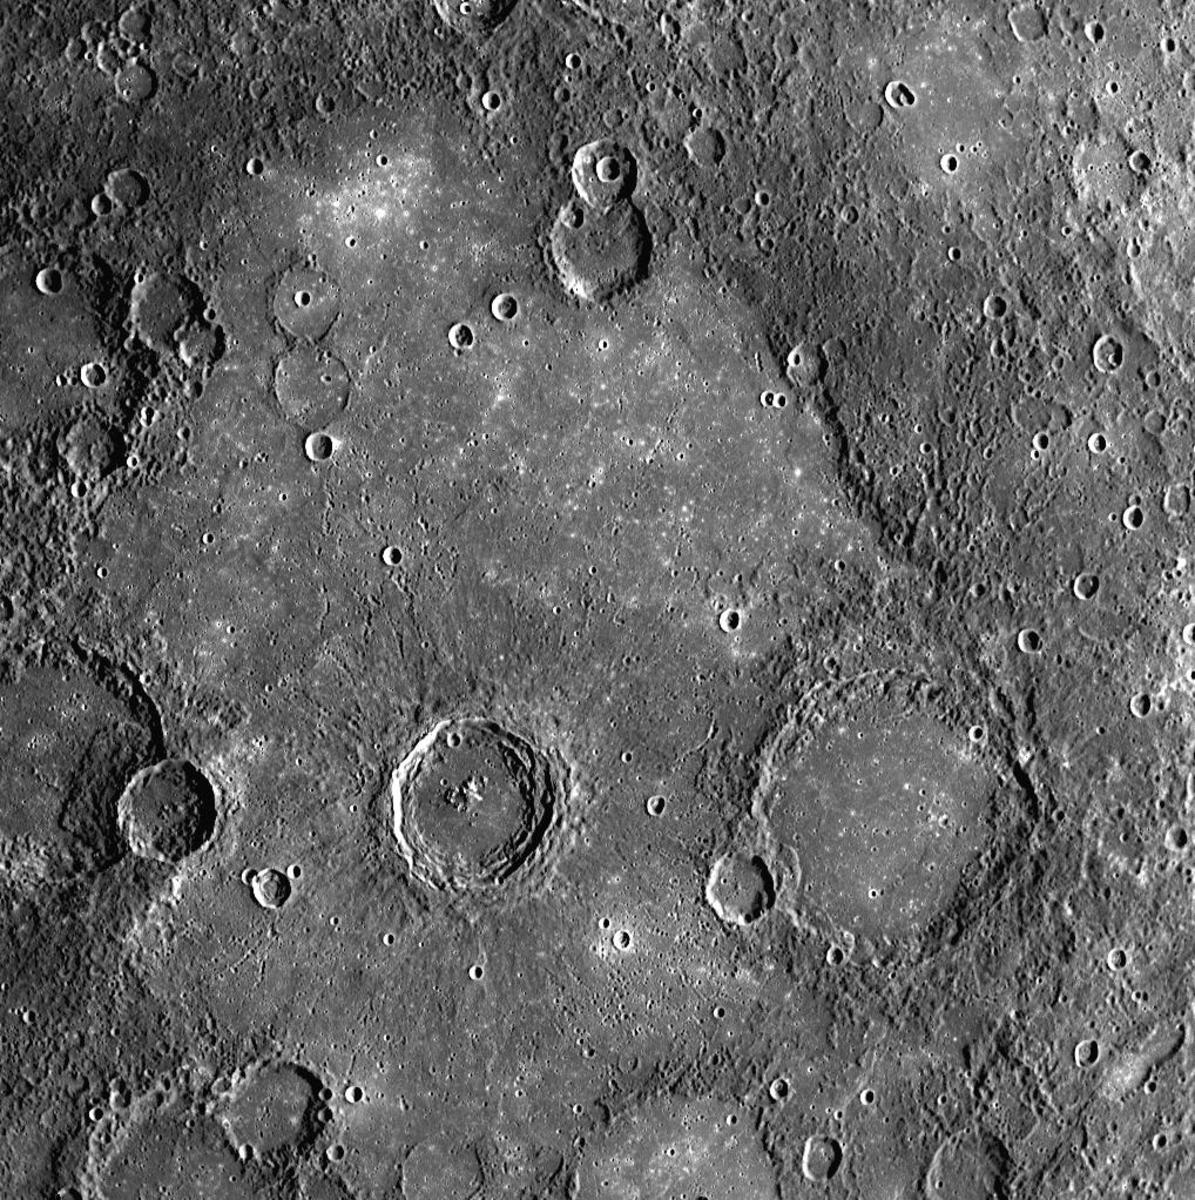 A Volcanic Plain on Mercury